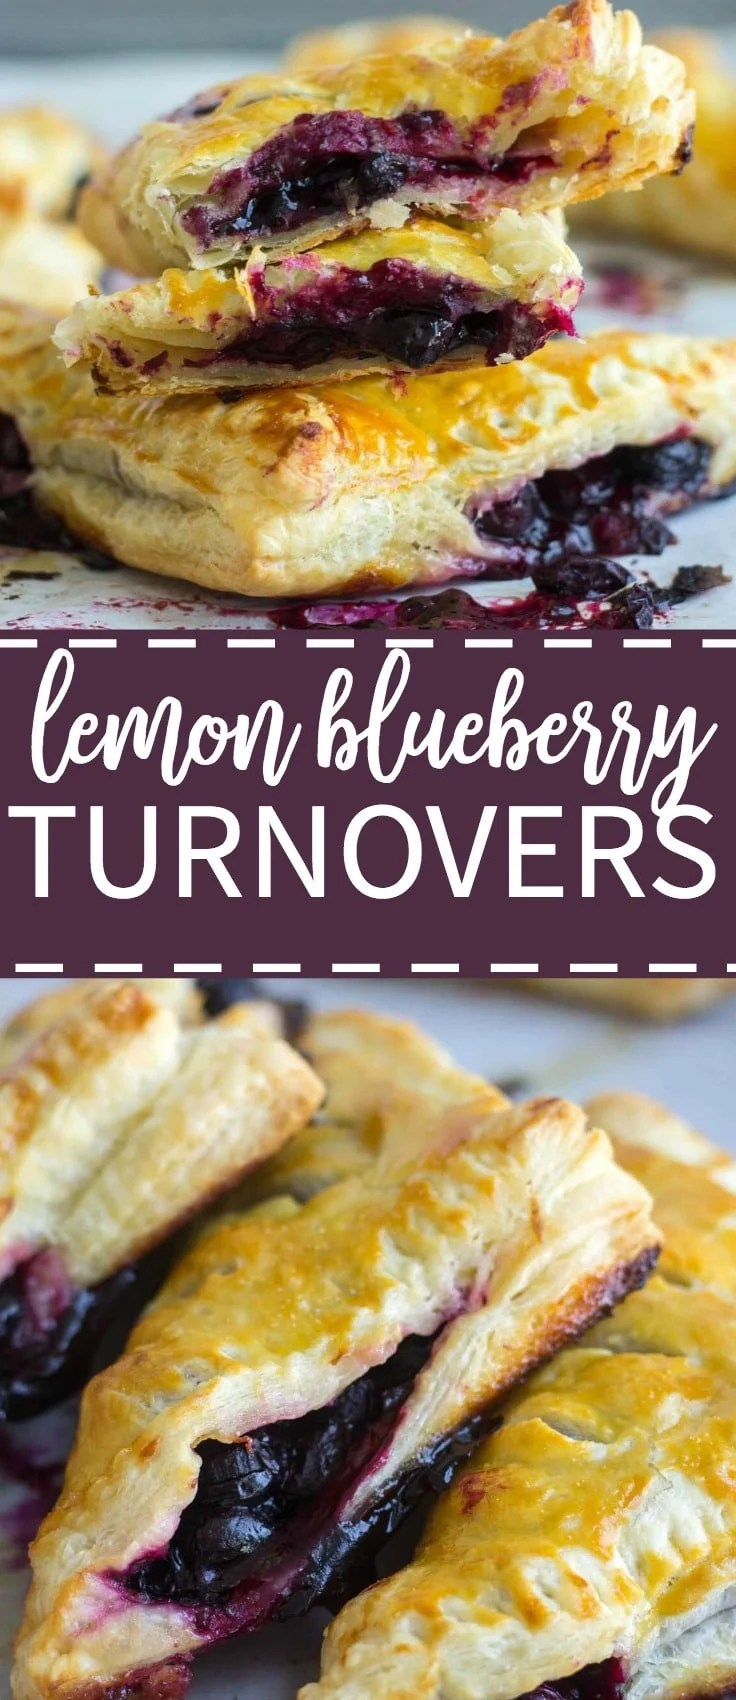 These flaky lemon blueberry turnovers are made with frozen puff pastry so they're easy to make. They're fill with fresh blueberries, lime juice and zest and baked to golden brown perfection. They're they best mixture of sweet and tart!